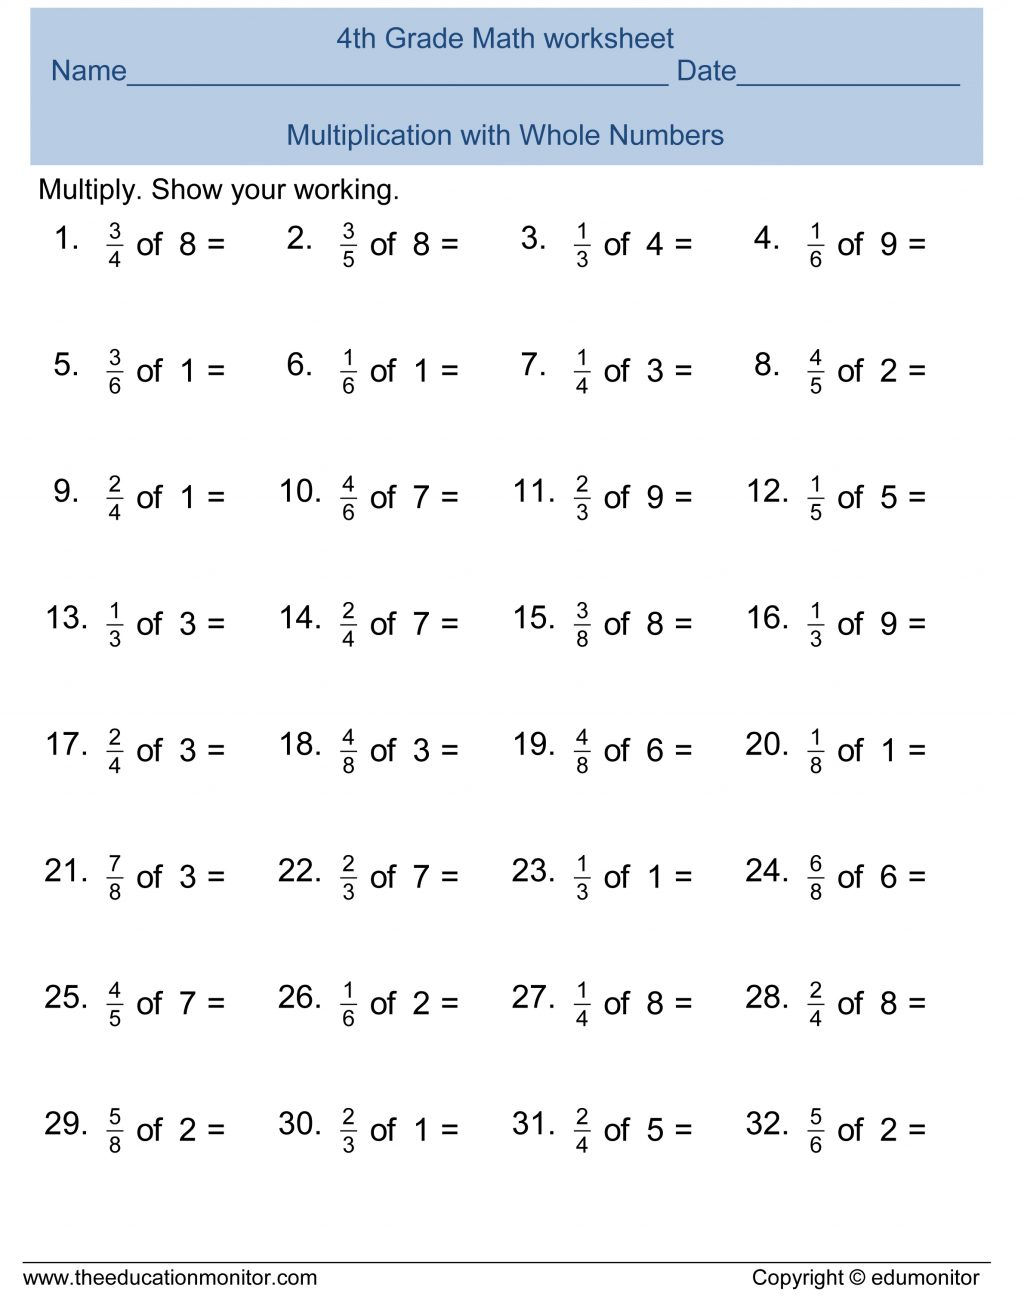 Fourth Grade Math Worksheets Multiplication Free Printable | Printable 4Th Grade Math Worksheets